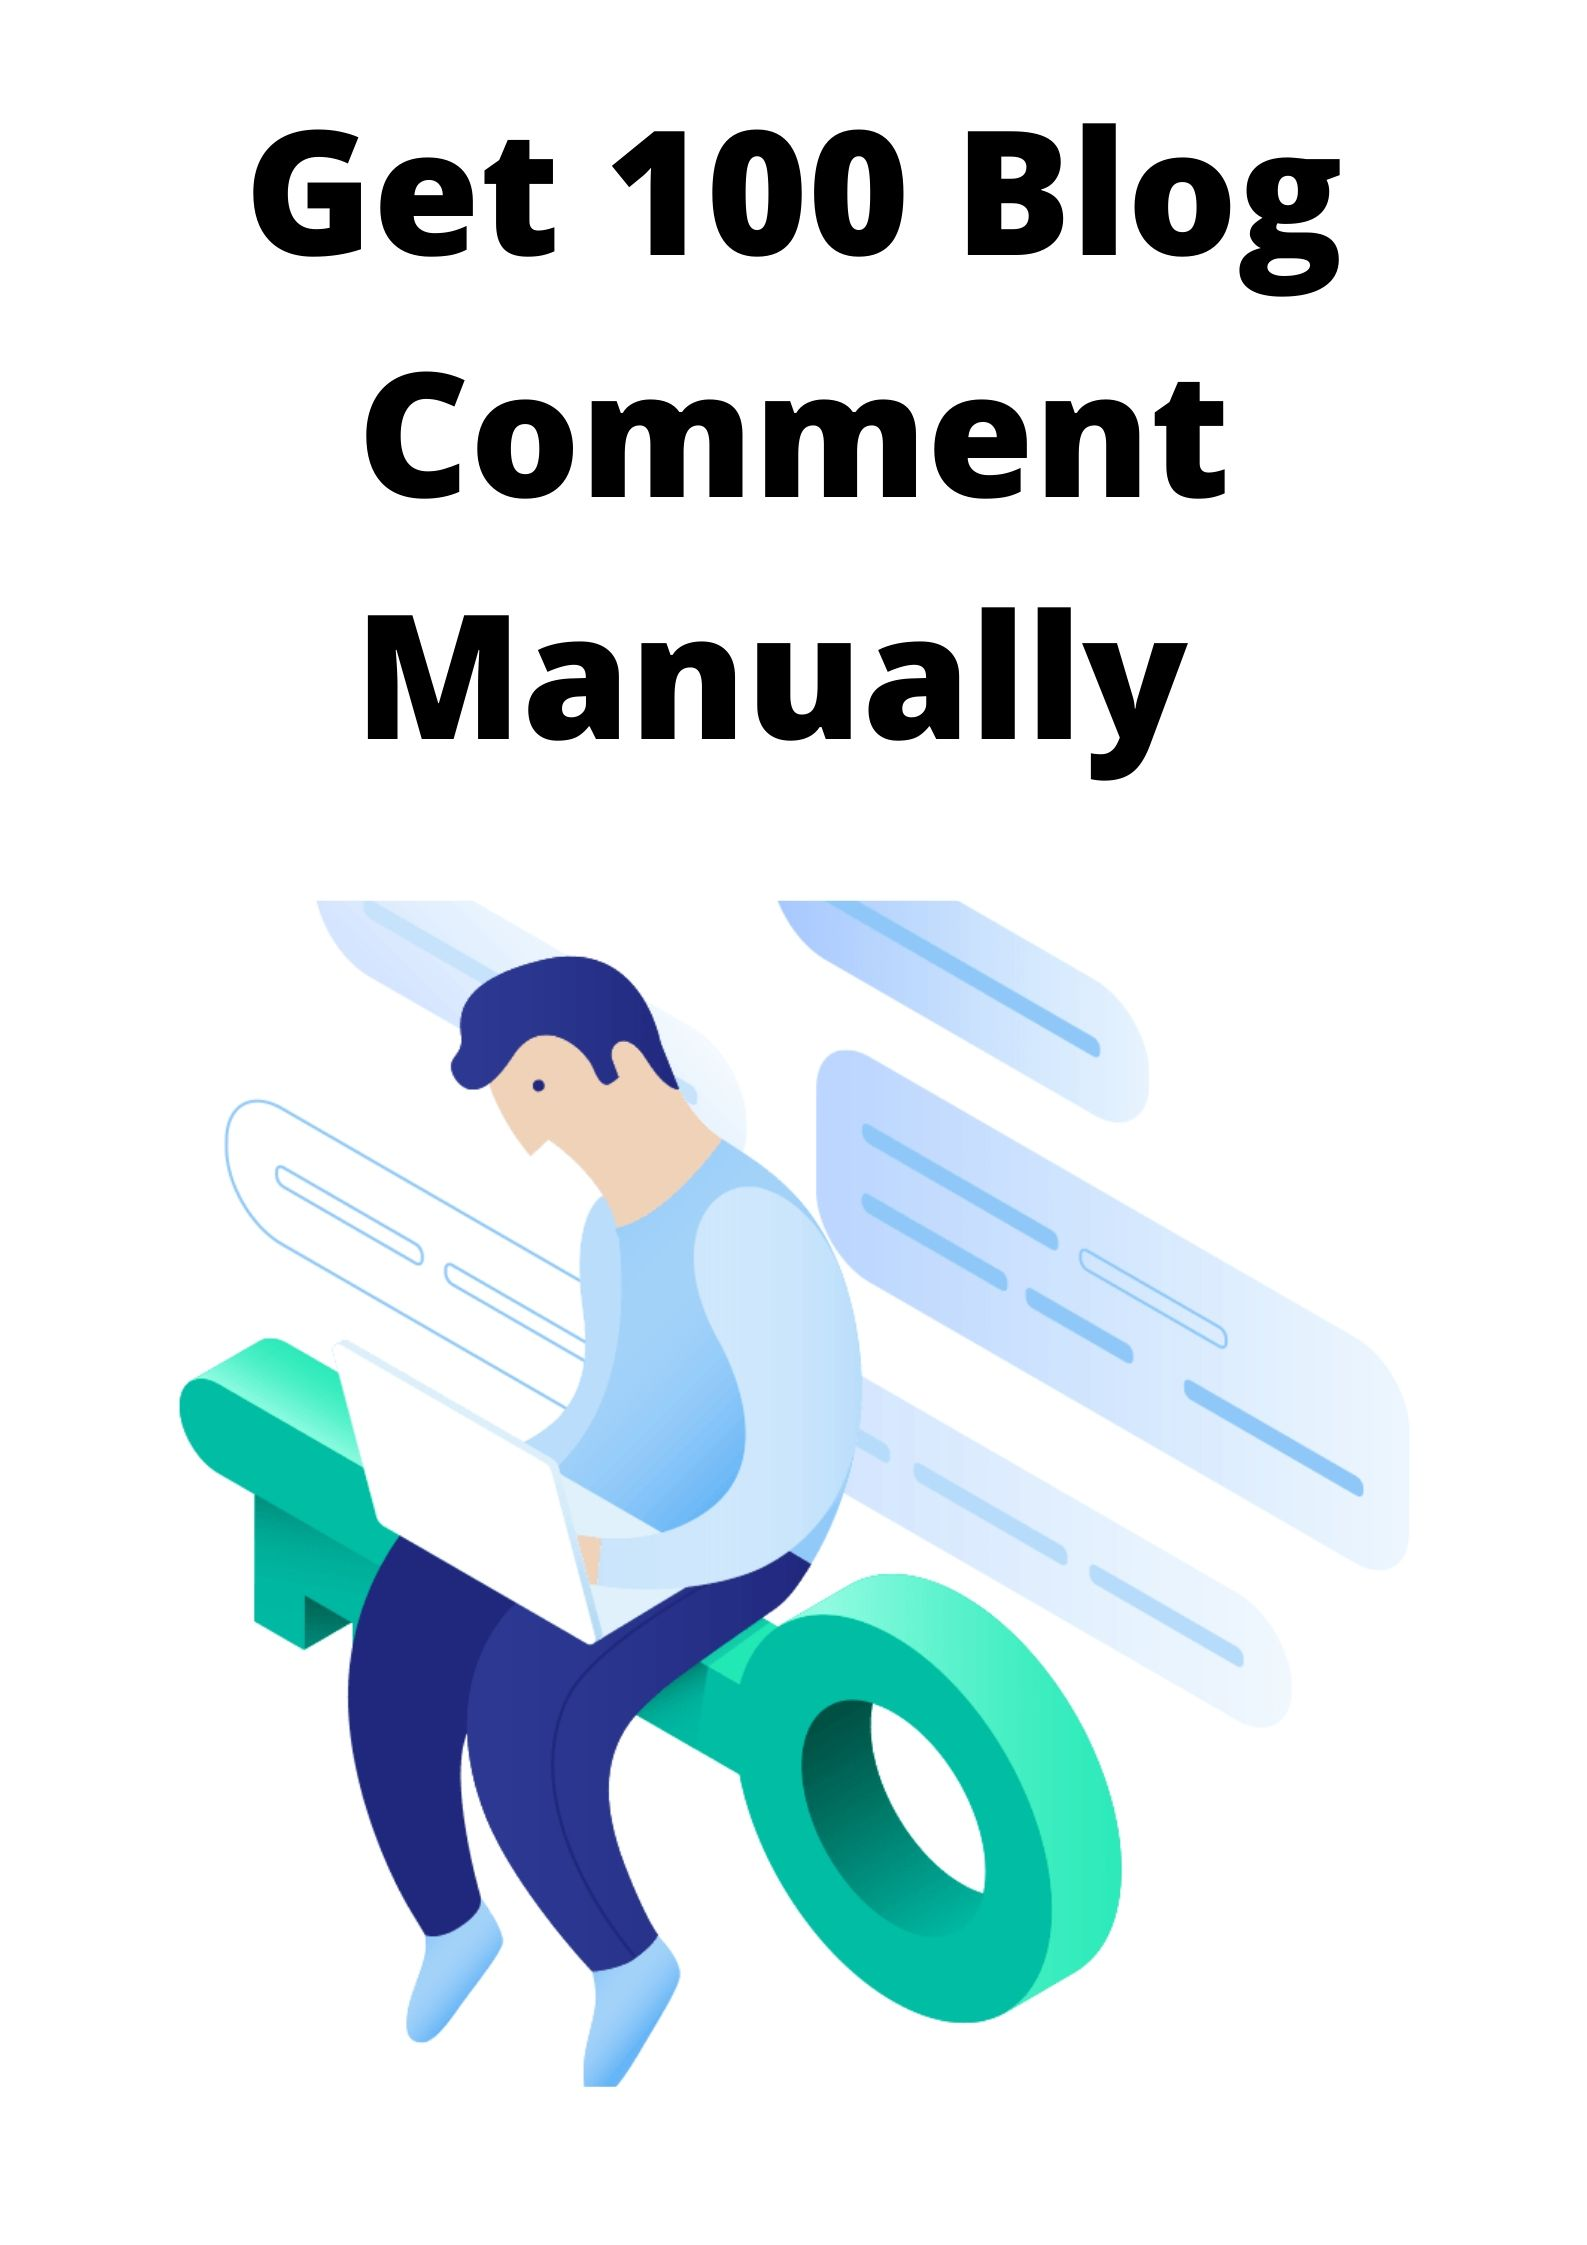 Get 100 high quality blog comment